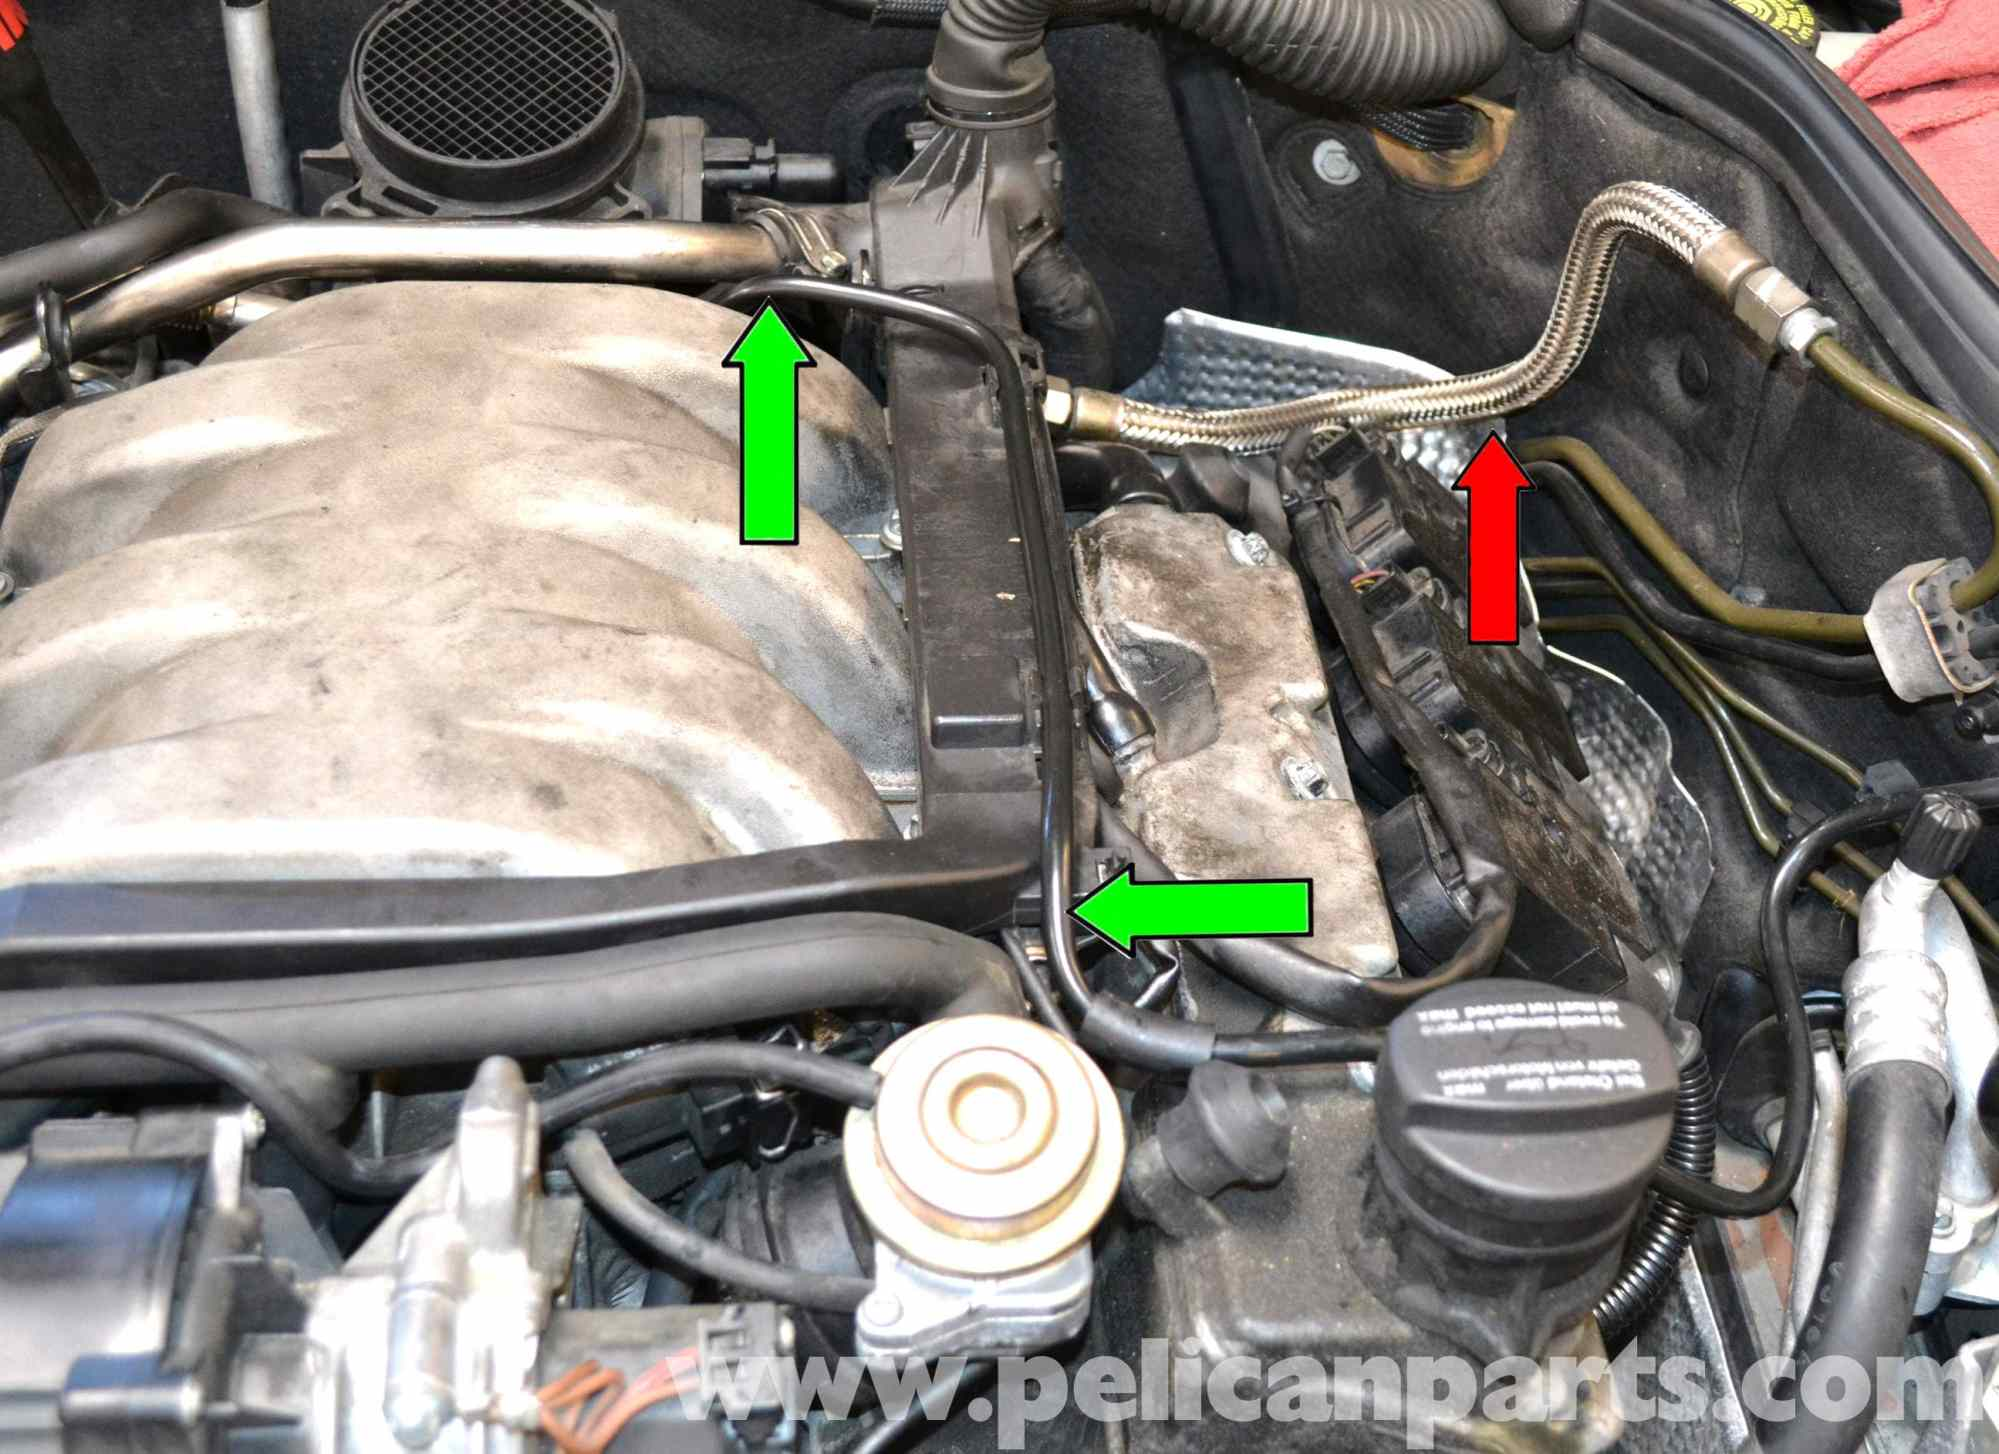 hight resolution of mercedes benz clk320 fuel injector replacement 2003 2006 pelican mercedes ml320 fuel filter location 2001 ml320 fuse box